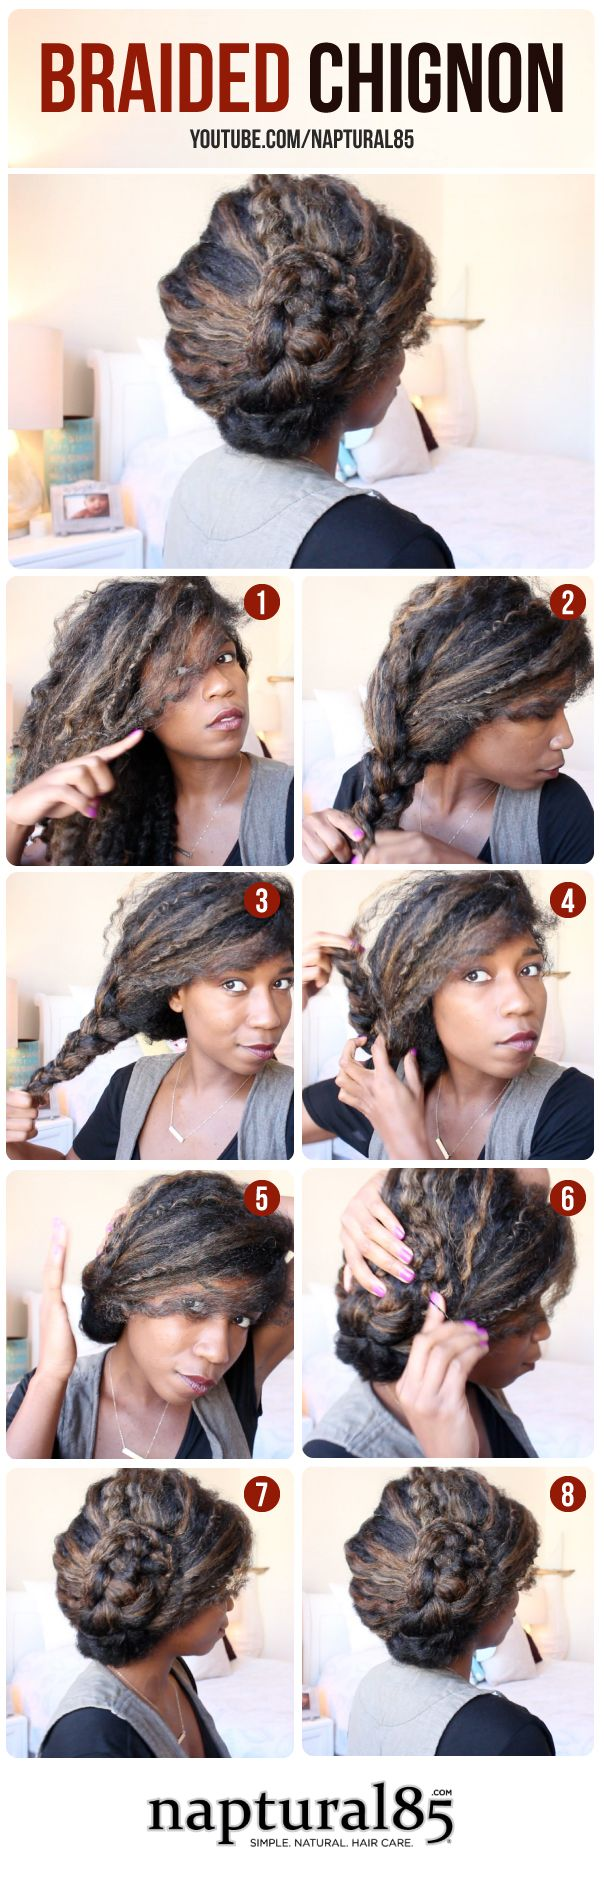 Natural Hairstyles by Naptural85 - Braided Chignon - Easy Hairstyle - Step By Step Tutorial